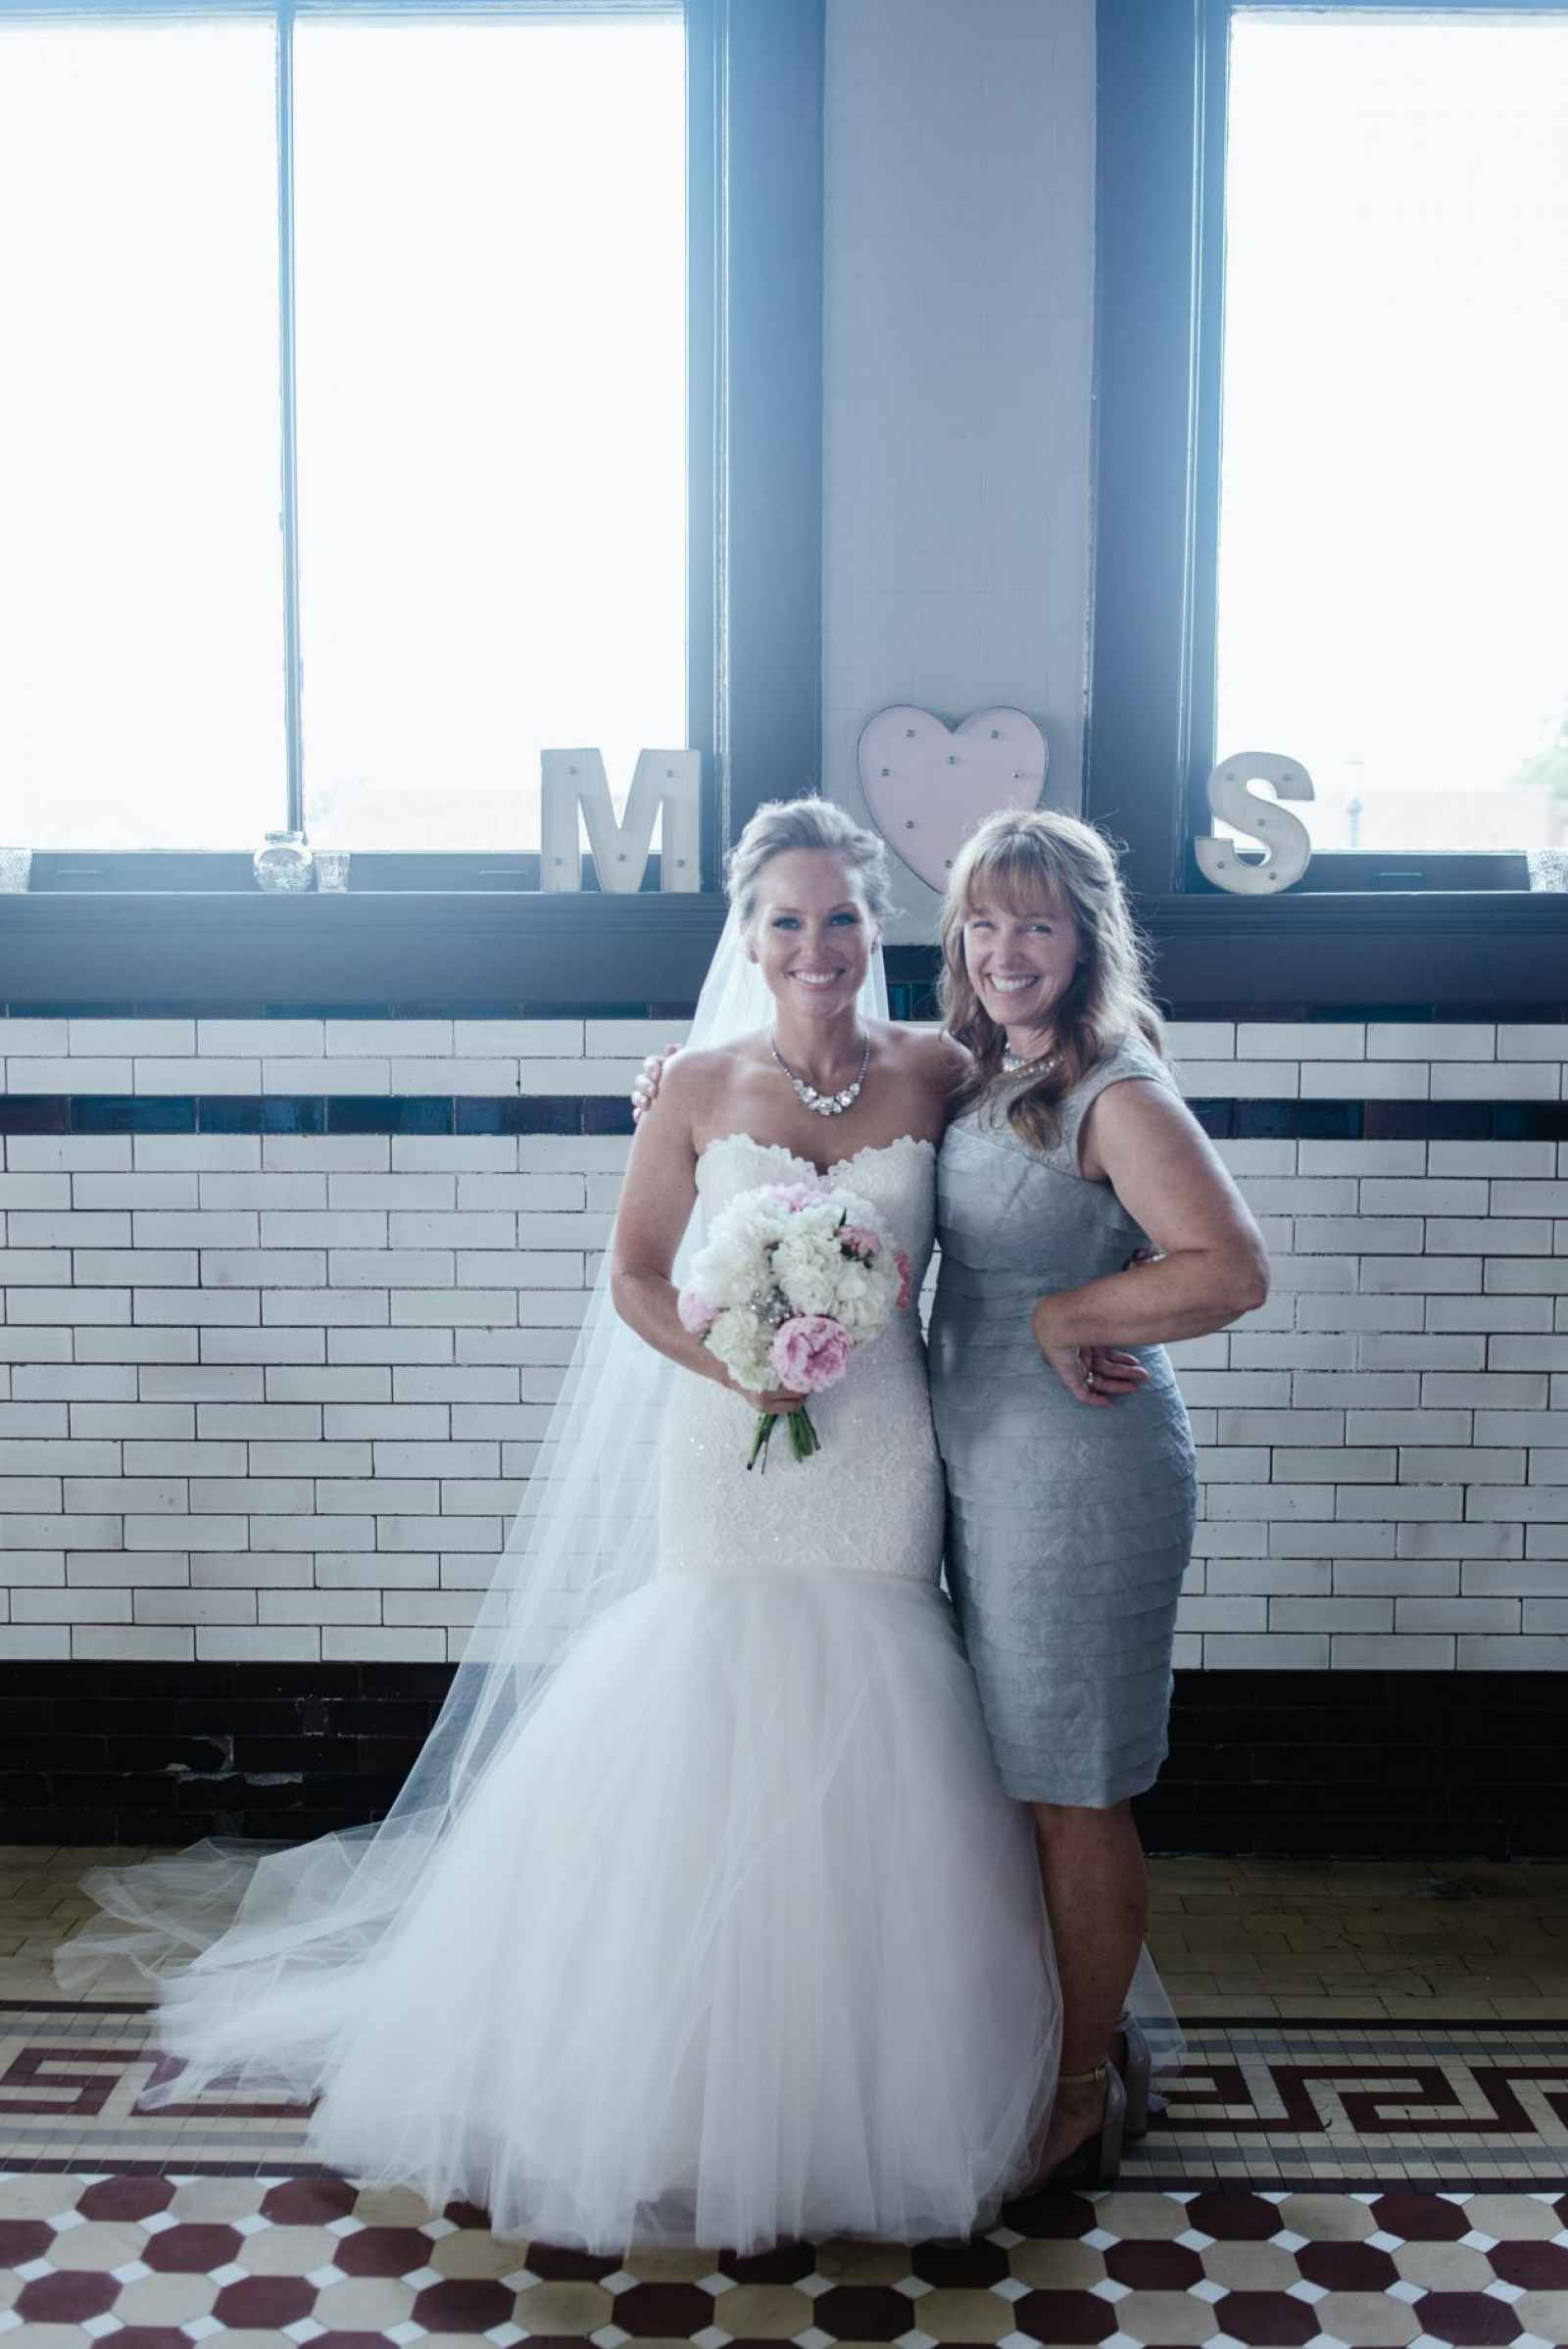 The Good Bones Behind a Great Wedding | WeddingDay Magazine